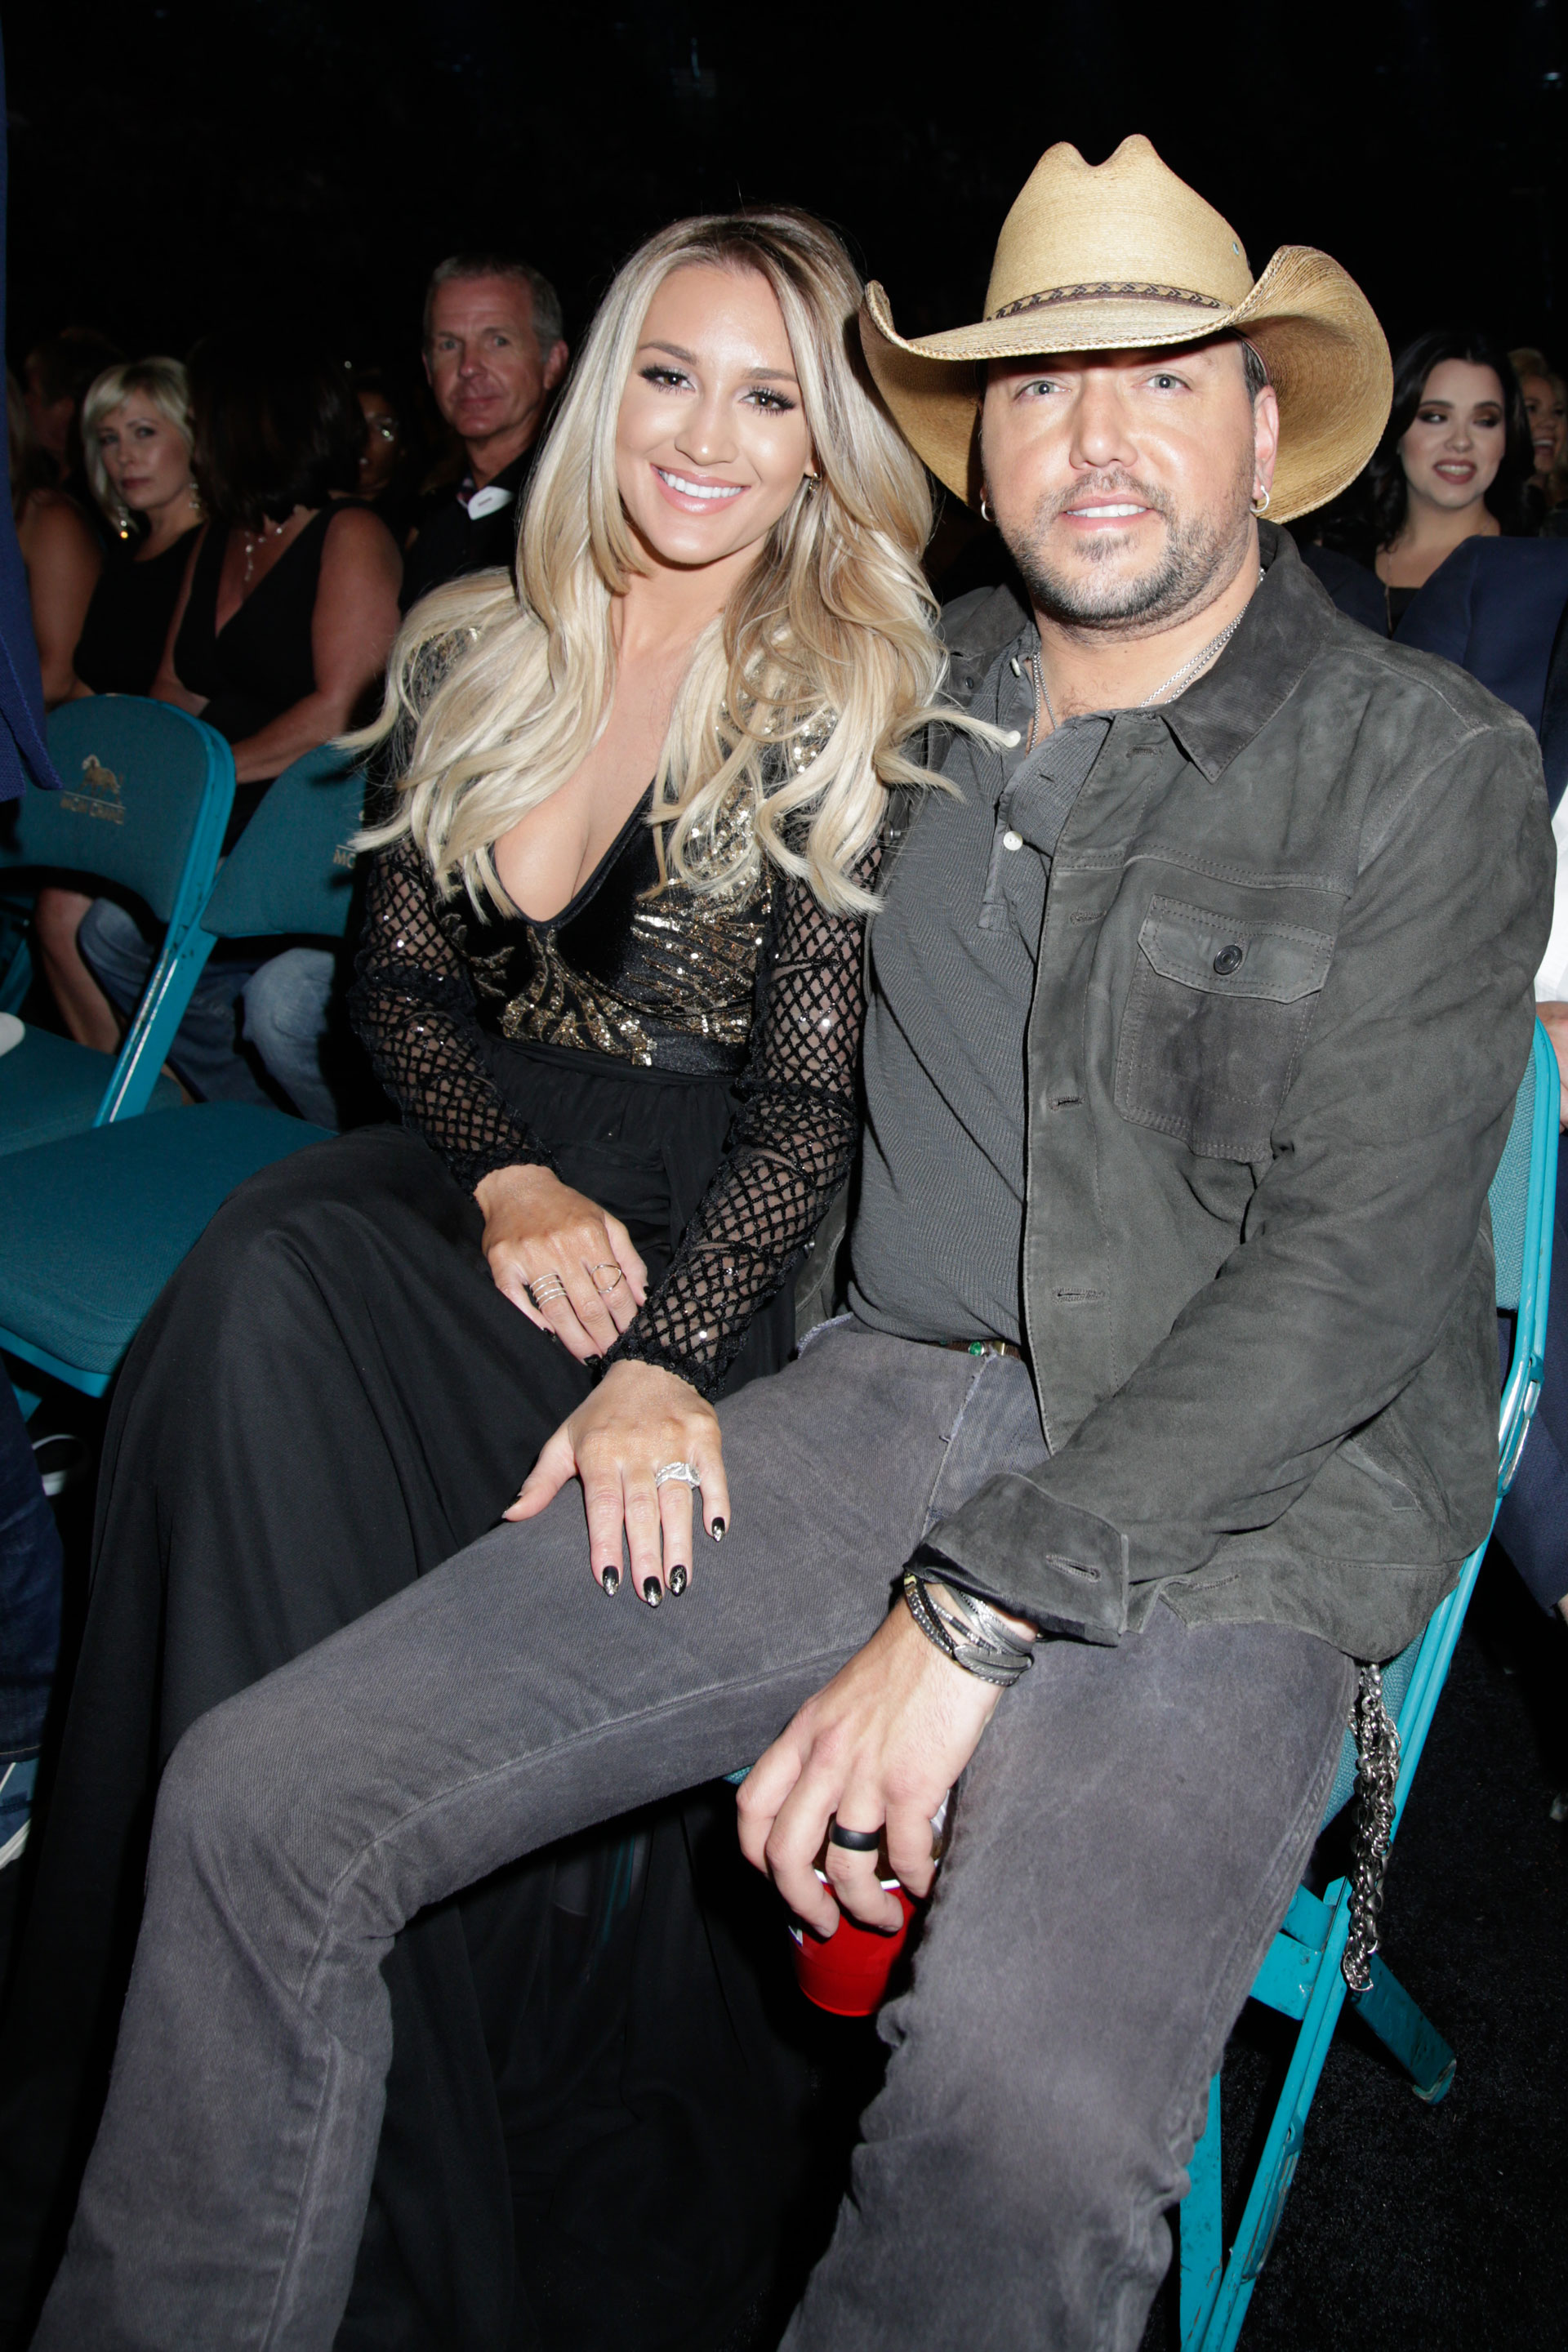 Before Jason Aldean won the 2016 ACM Award for Entertainer Of The Year, he posed with his wife, Brittany Kerr.